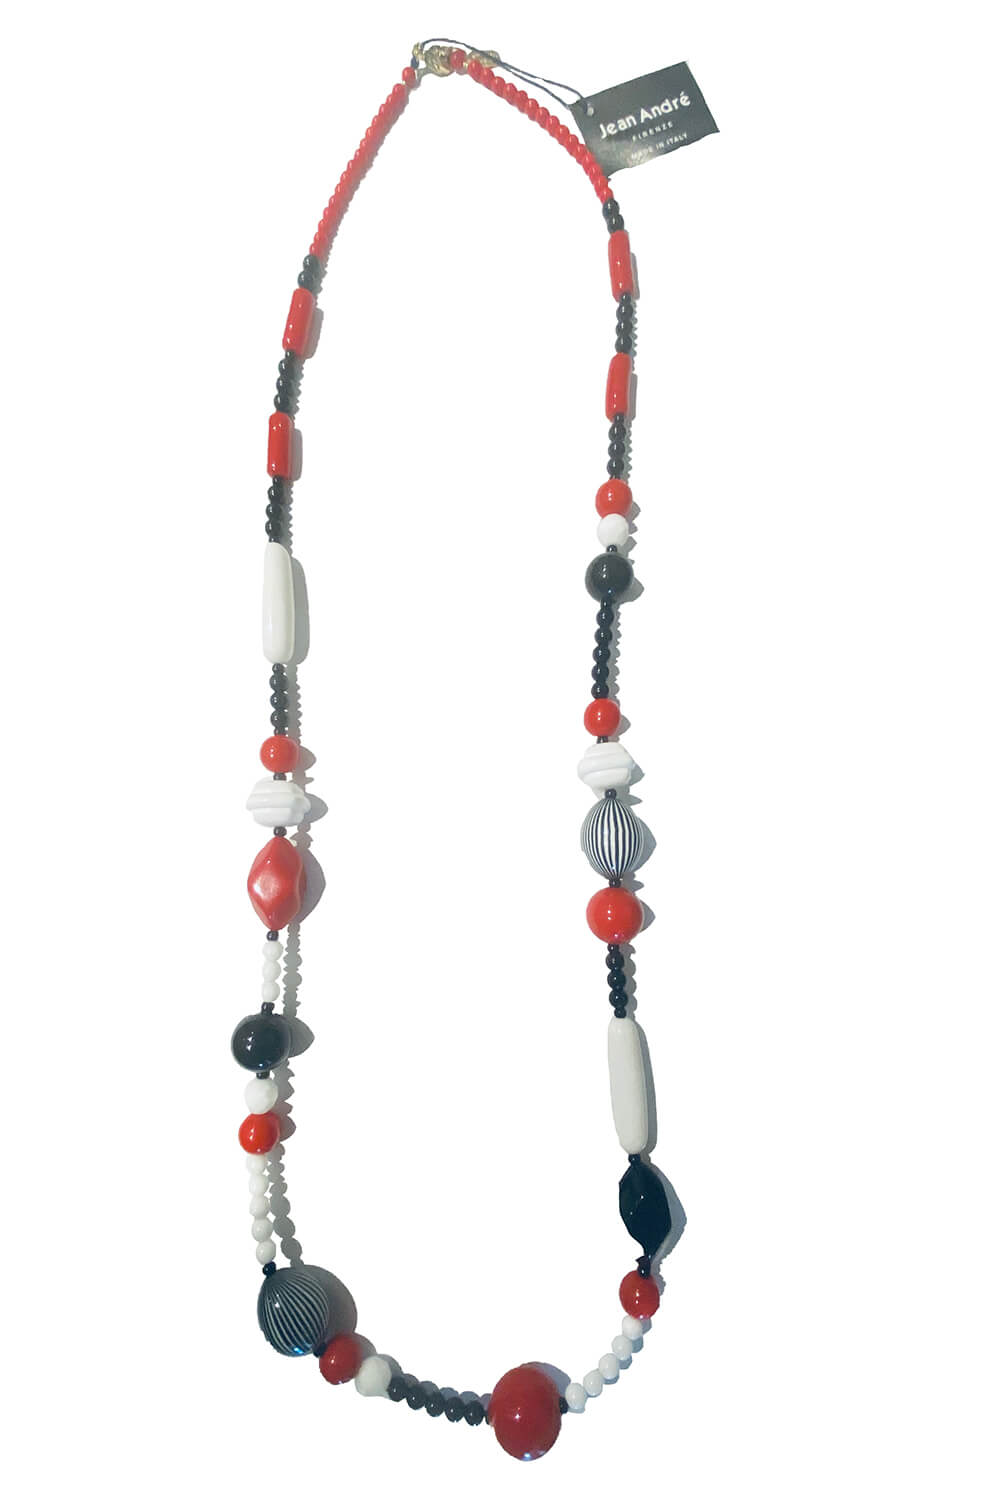 JEAN ANDRÉ long necklace in white, red and black made of resin MANHATTAN